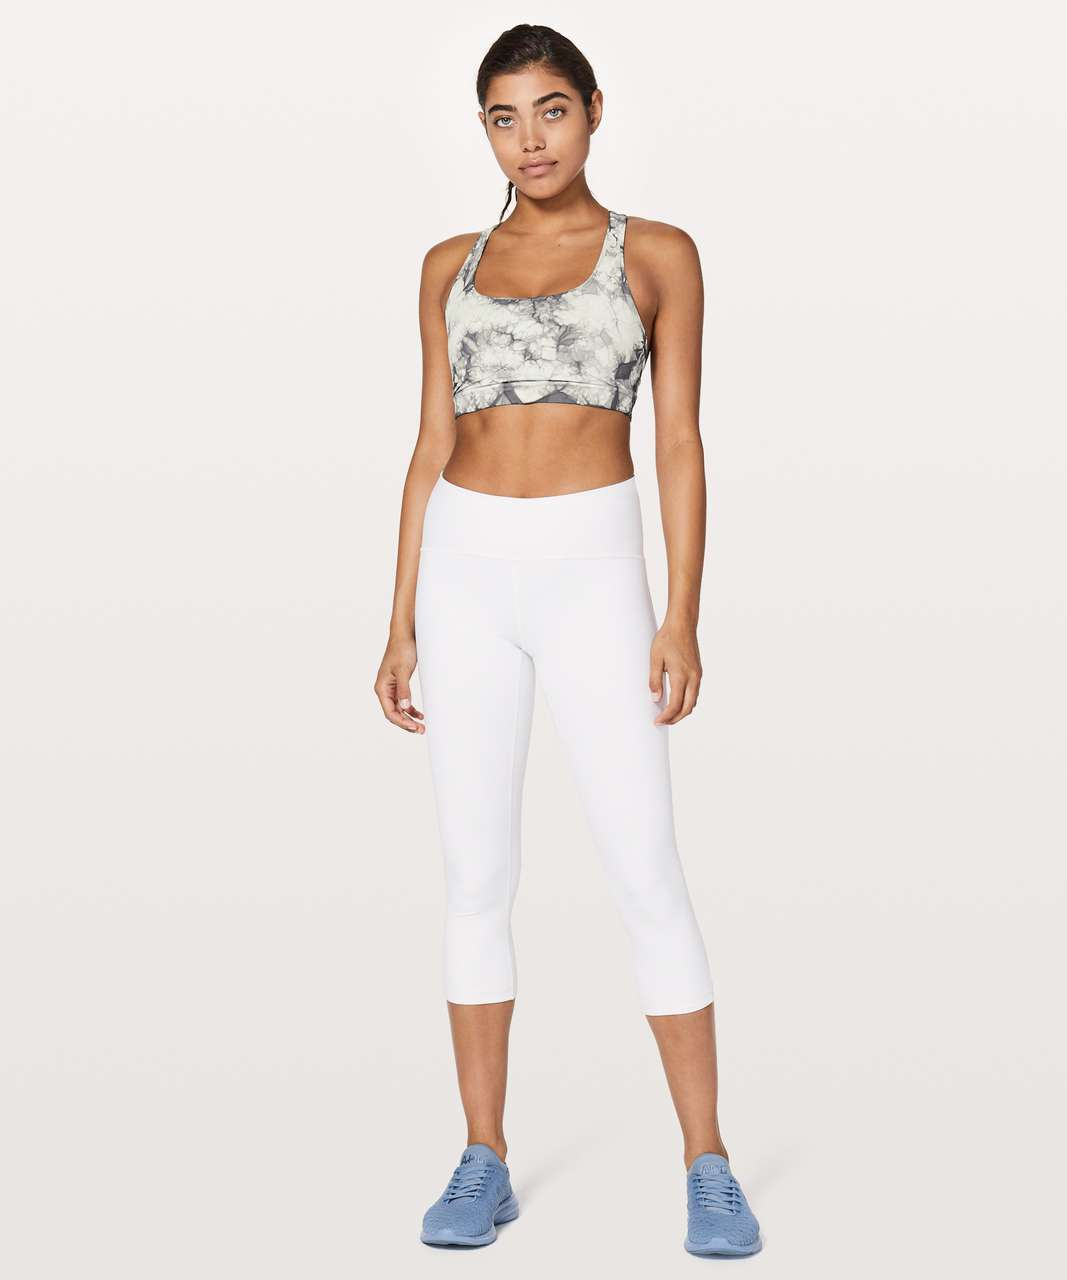 Lululemon Energy Bra *Shibori - Dual Shibori Antique White Baltic Grey